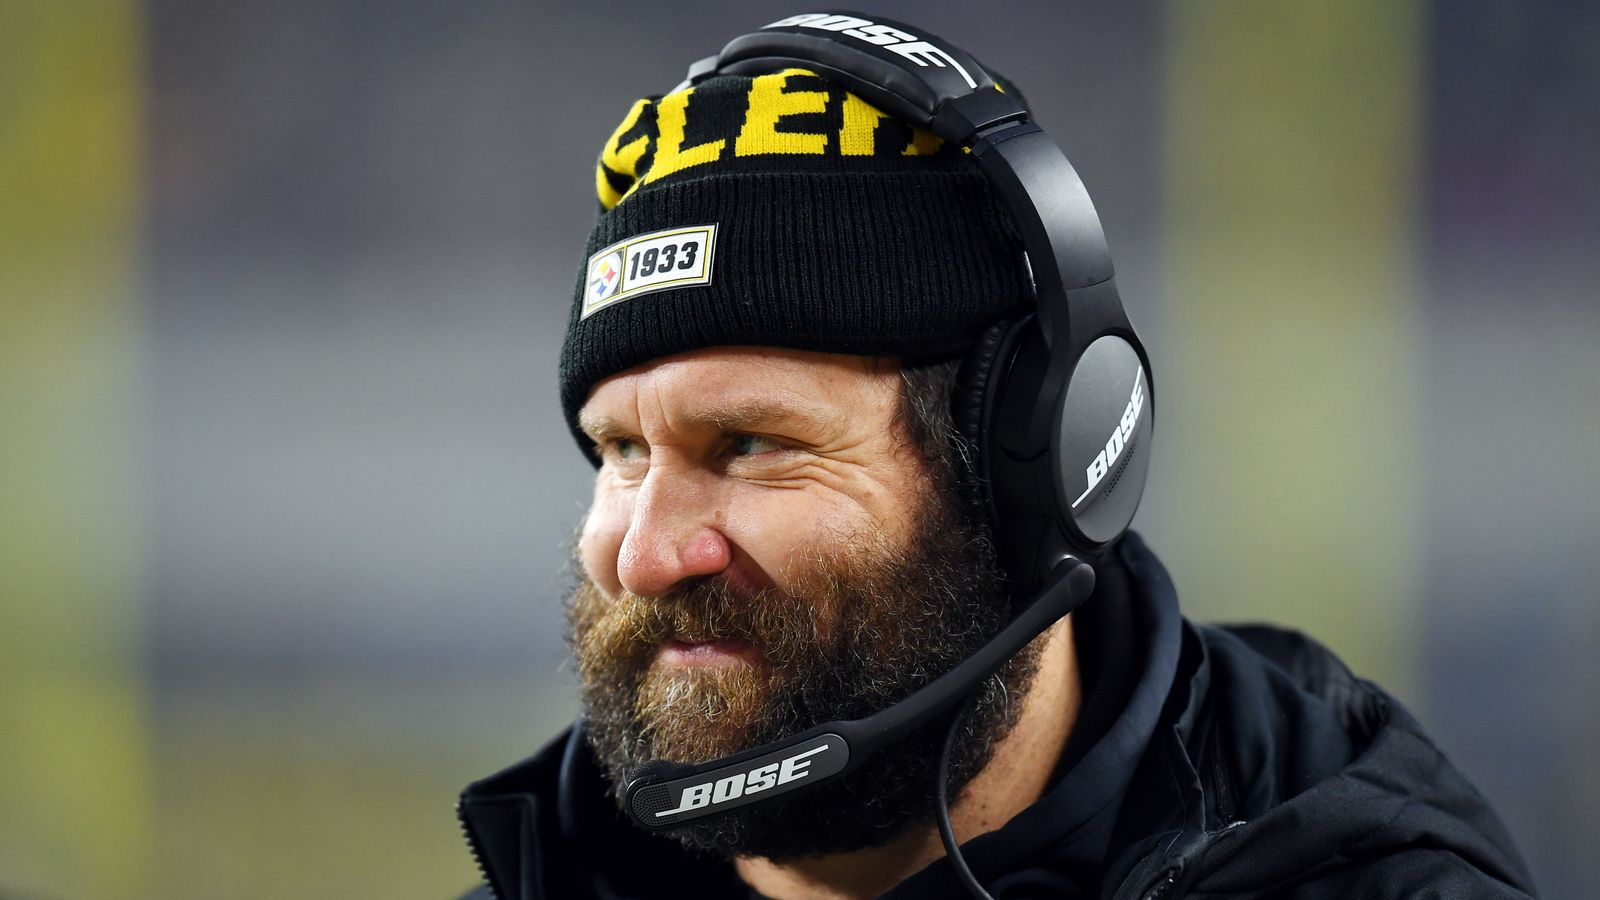 Pittsburgh Steelers expecting a better Ben Roethlisberger after surgery, says Jeff Reinebold